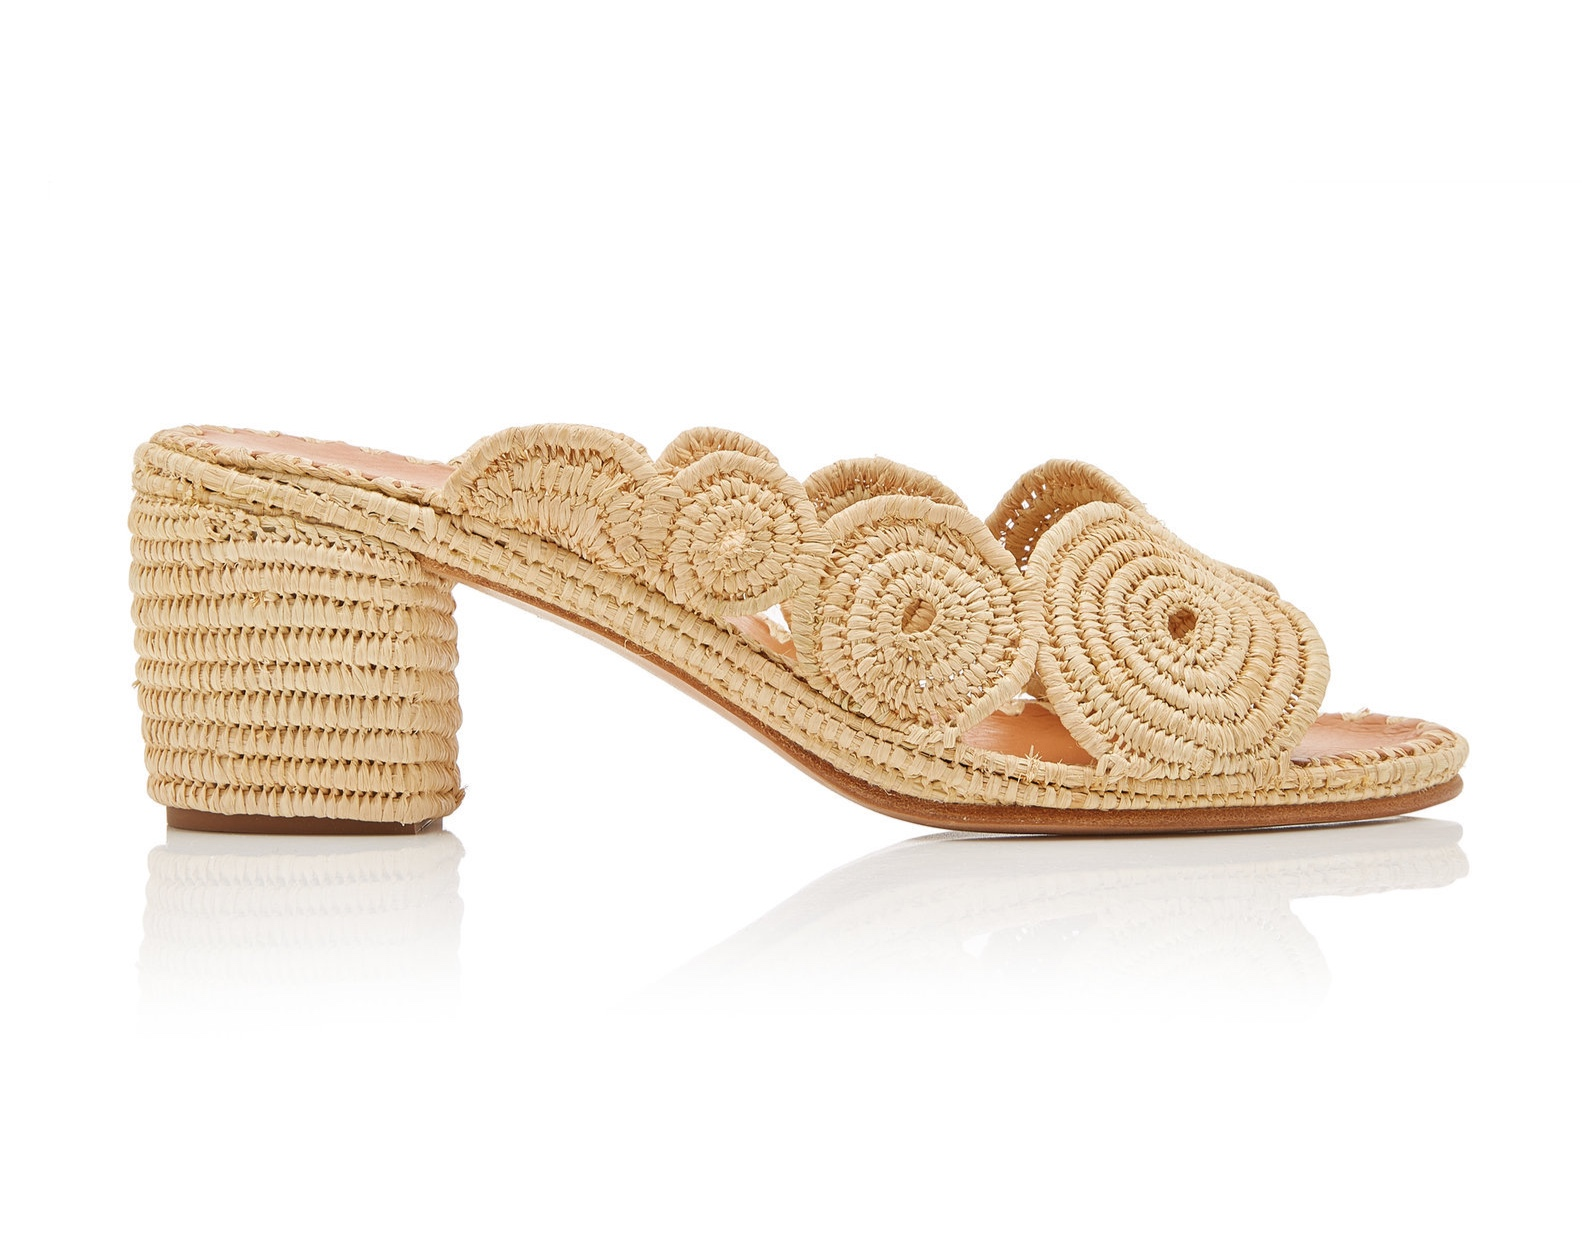 Carrie Forbes Ayoub raffia mules